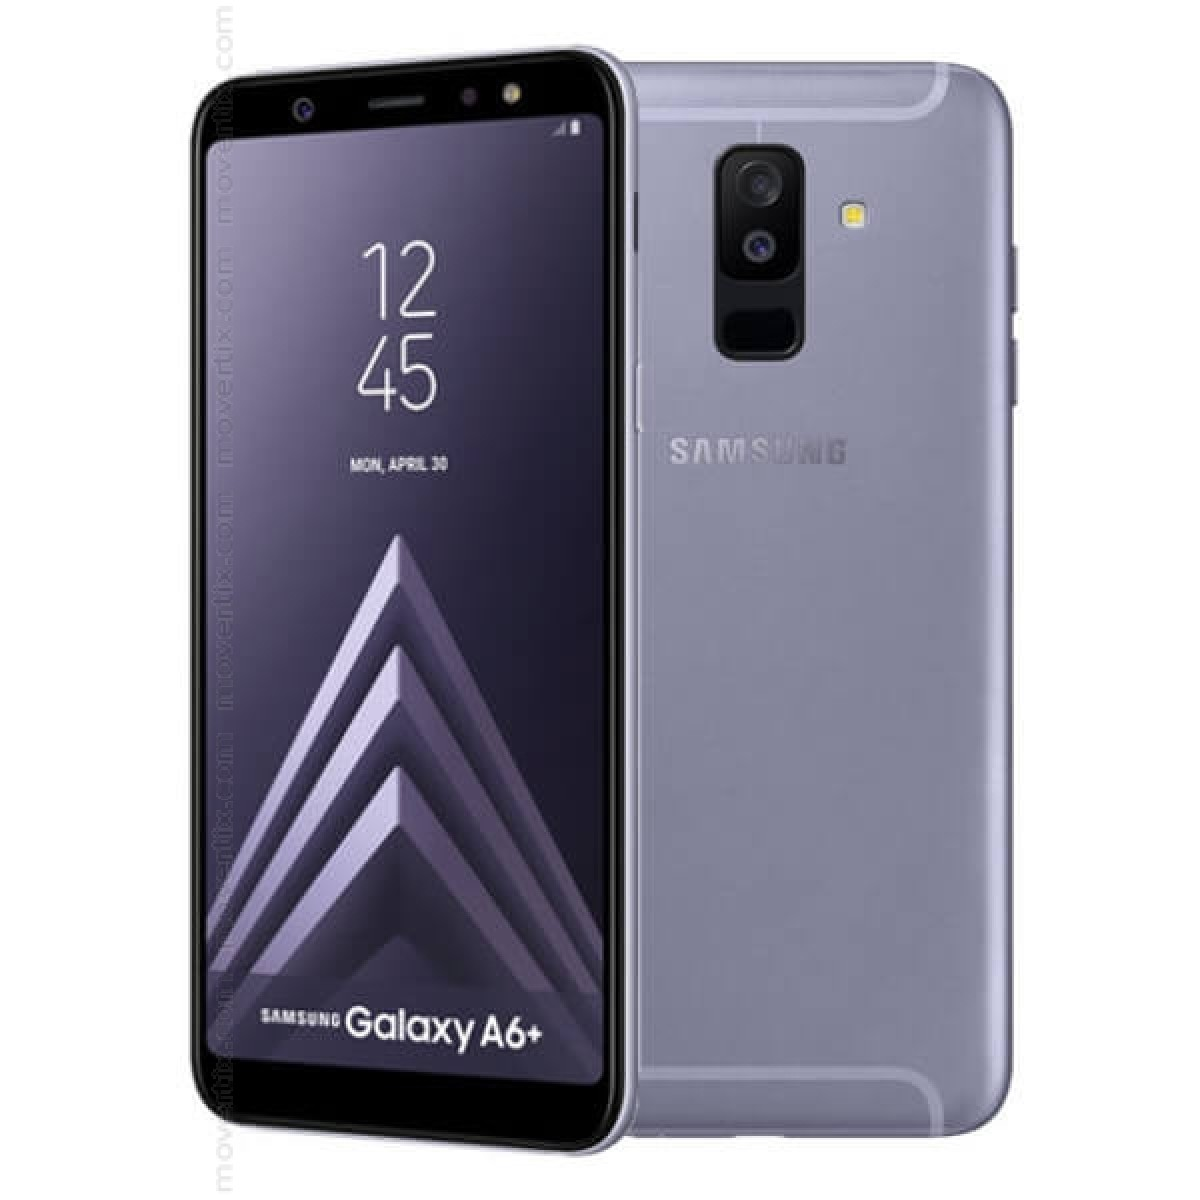 samsung galaxy a6 plus 2018 dual sim in lila mit 32gb und 3gb ram 8801643330118 movertix. Black Bedroom Furniture Sets. Home Design Ideas